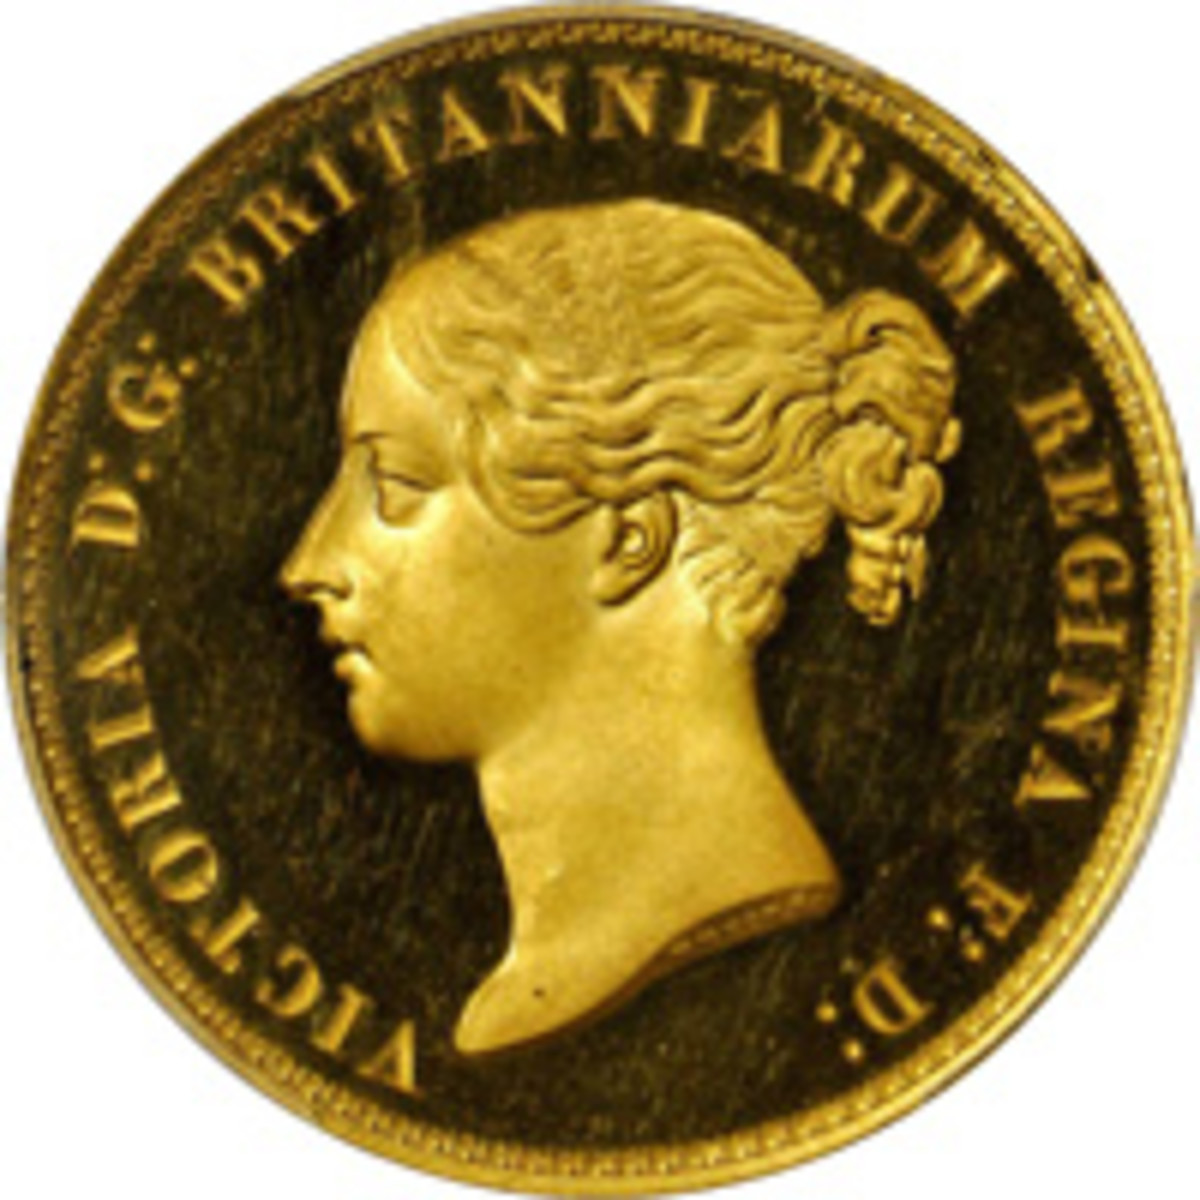 """Obverse of the choice """"Una and the Lion"""" 5 pounds from the 15-piece 1839 proof set that fetched $432,000 or well over upper estimate at Stack's Bowers ANA world & ancient coin sale. (Image courtesy Stack's Bowers)"""